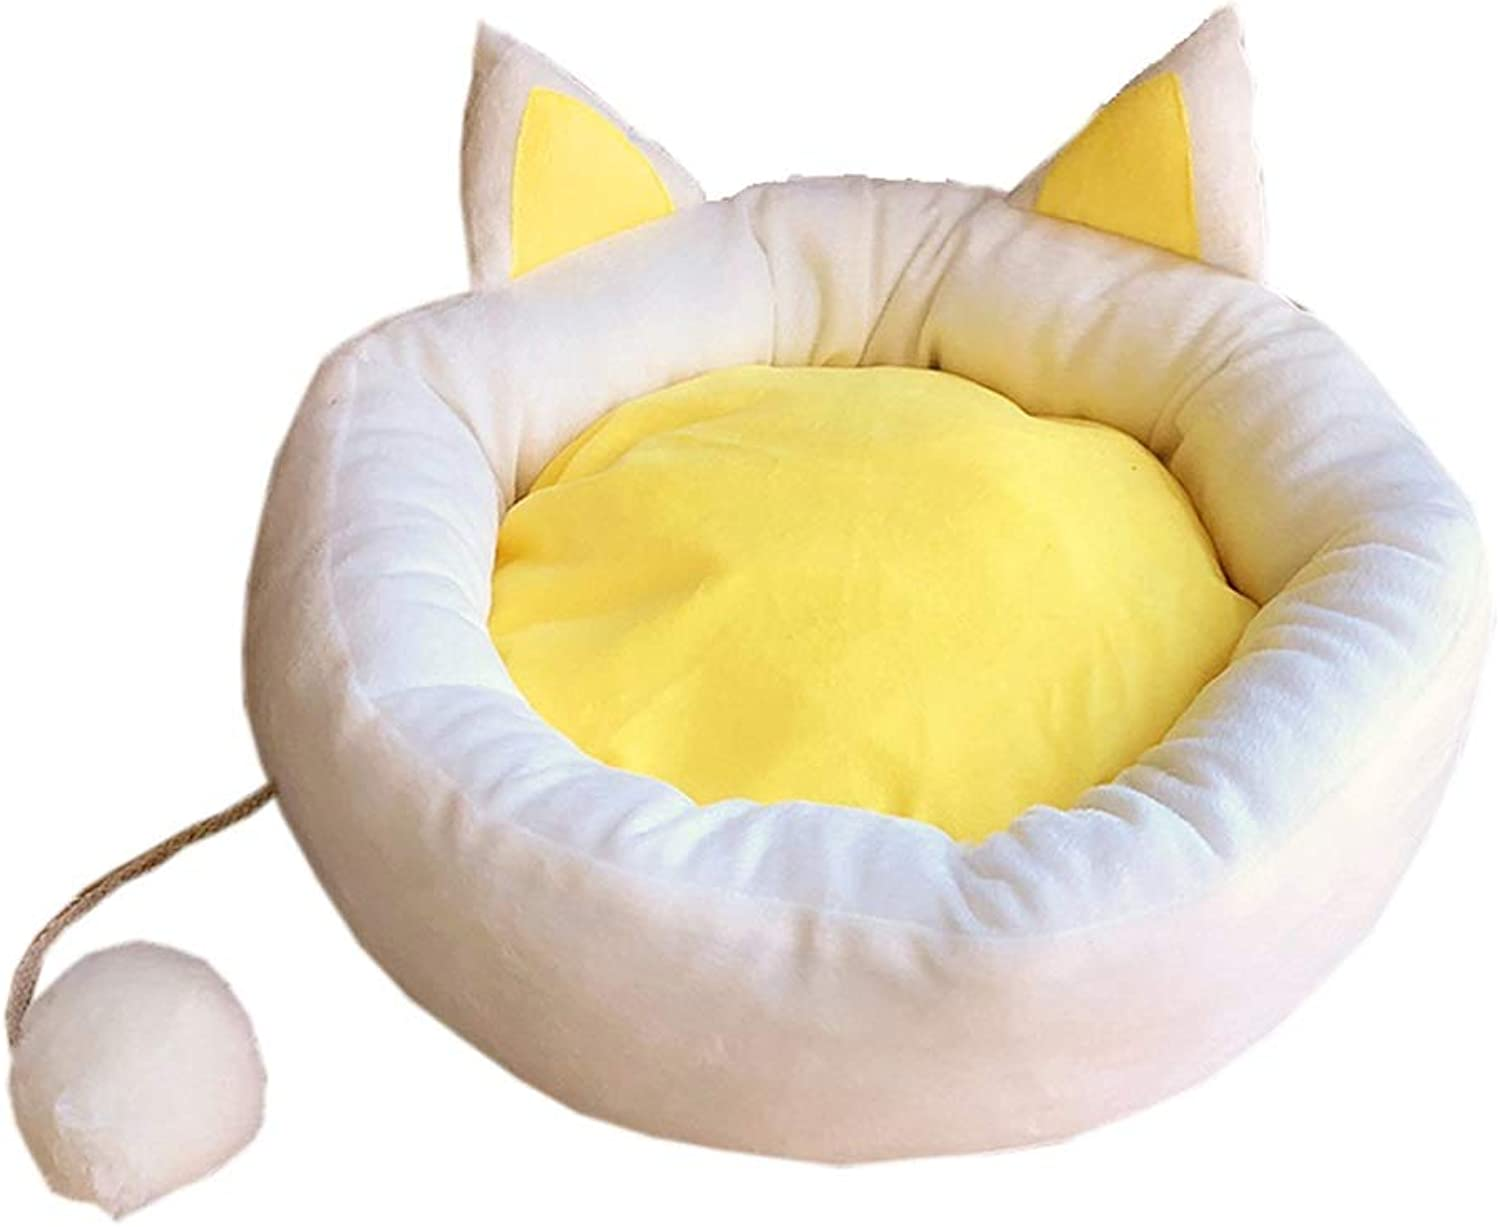 SMMBM Egg Yolk Cat Nest Four Seasons Universal Cushion Removable and Washable Cat Supplies, Small Kennel, Three Sizes Pet Bed (Size   52CM)